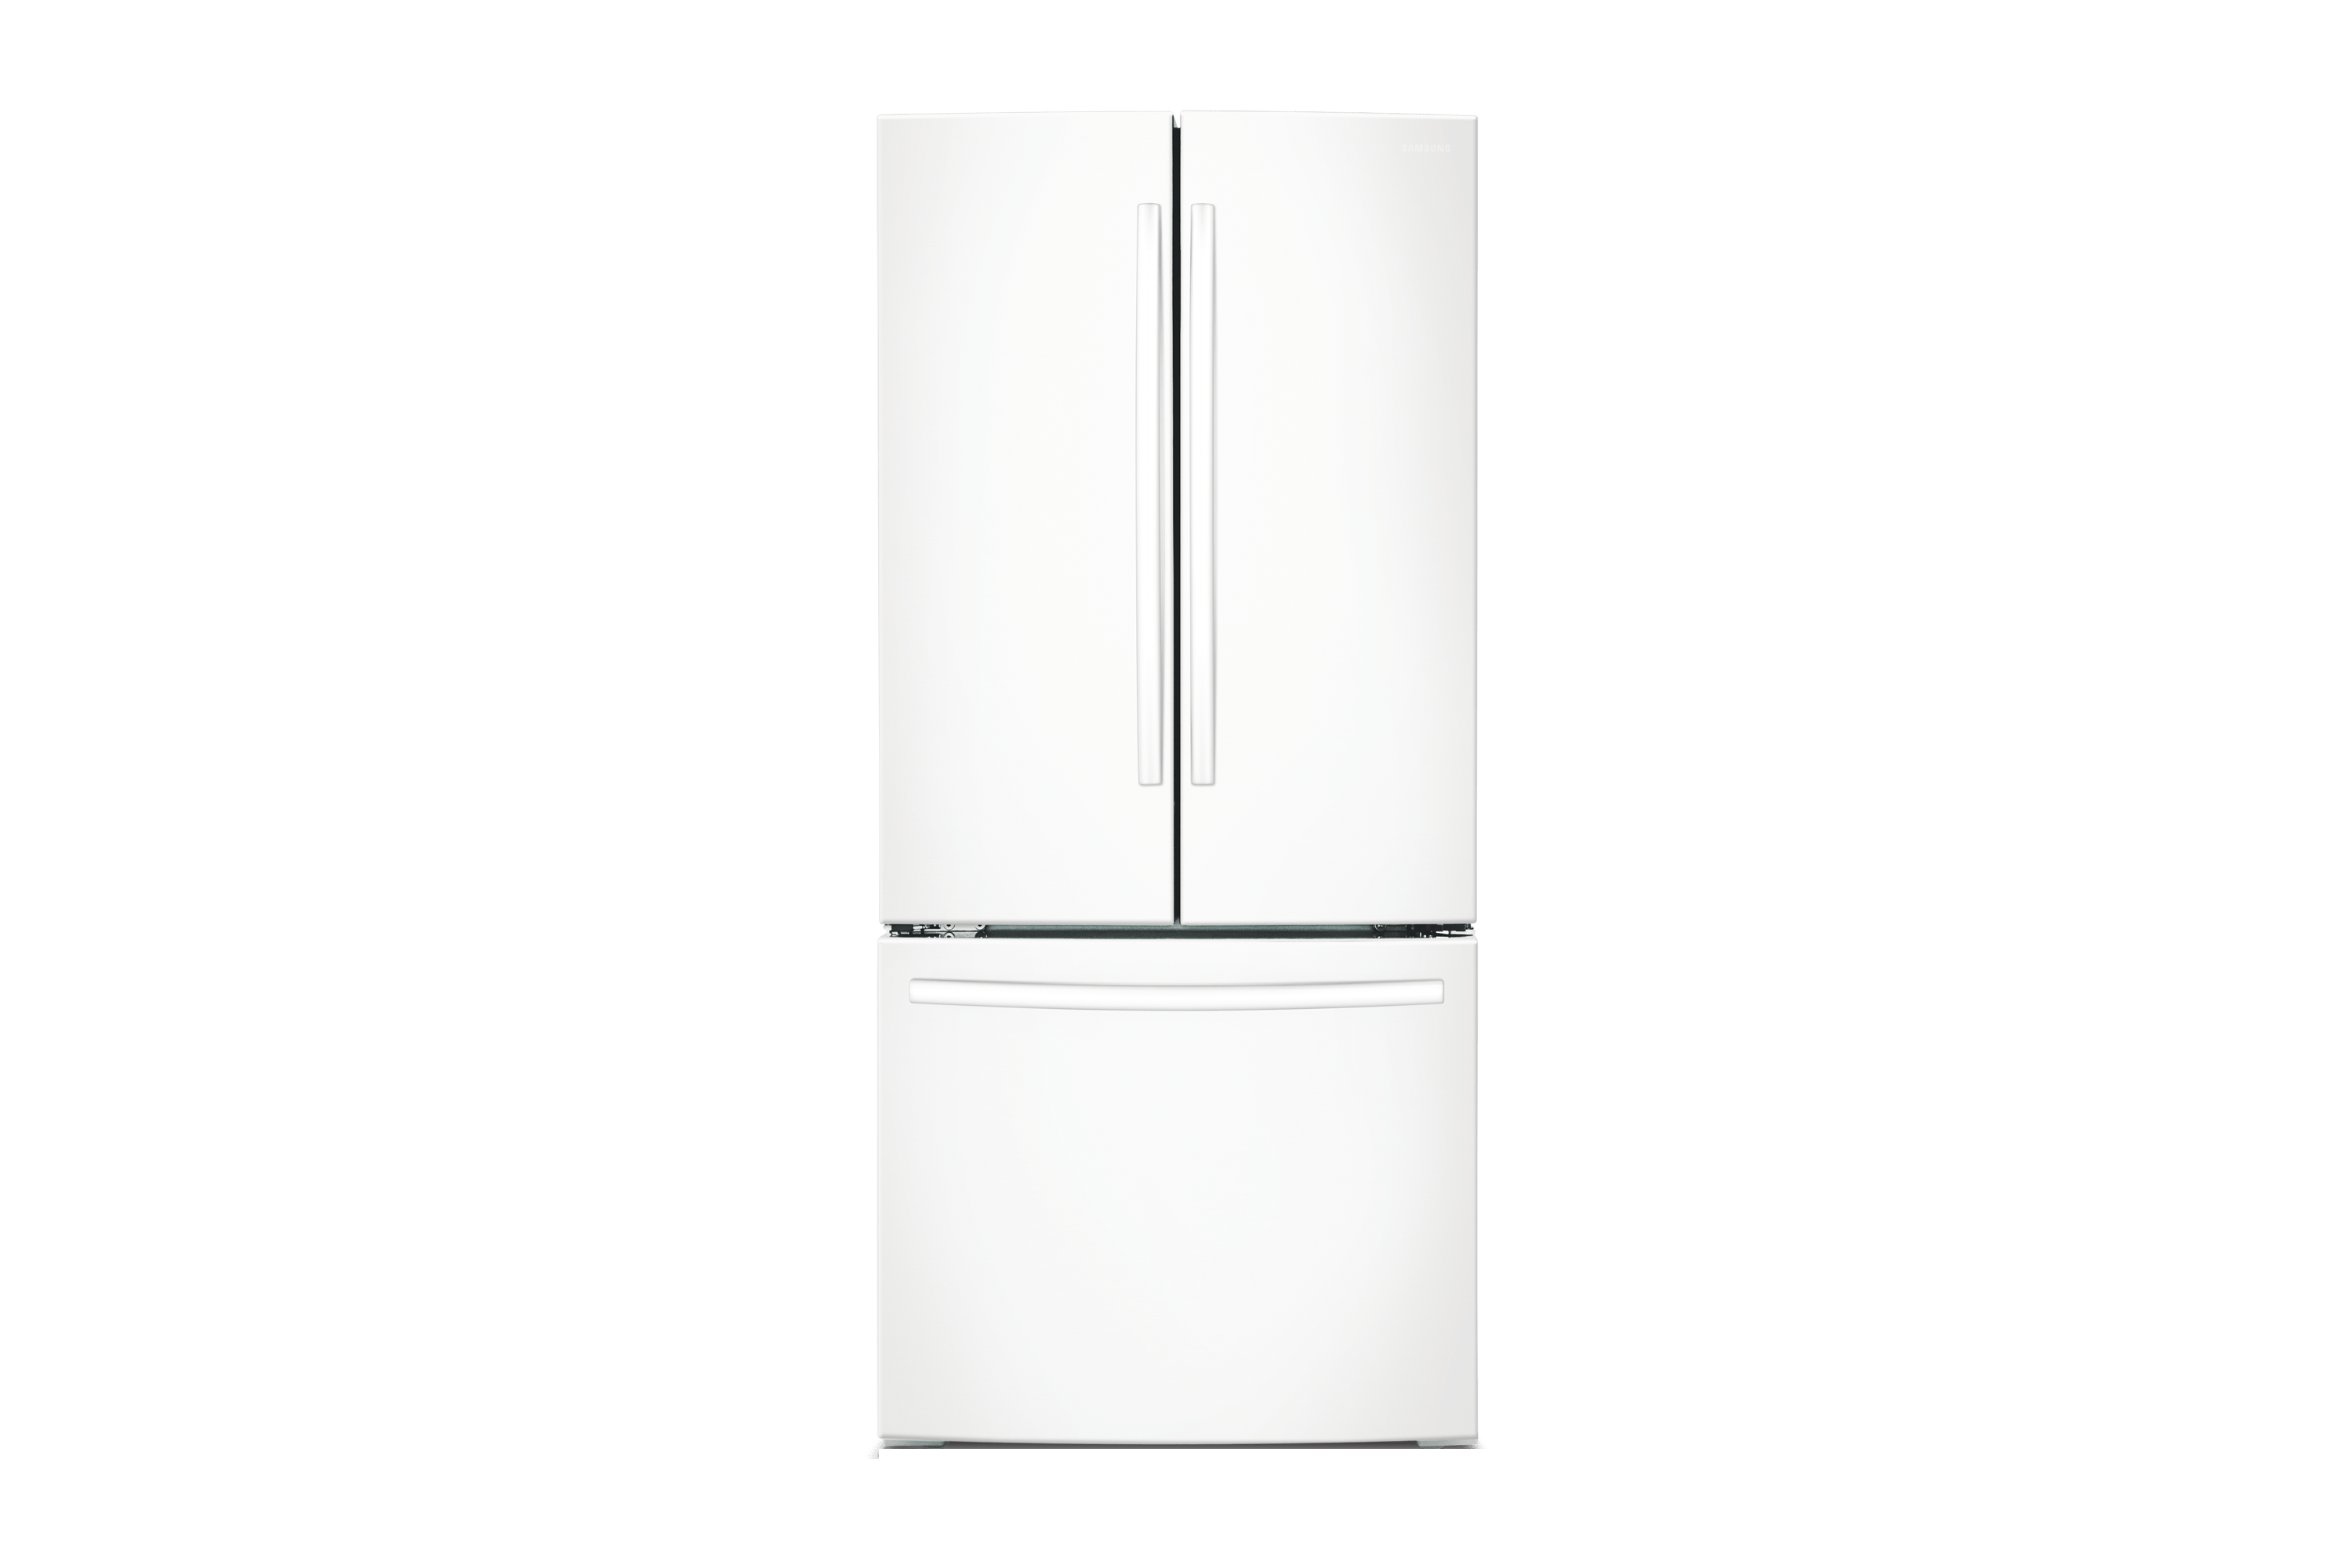 hight resolution of rf220nctaww french door refrigerator with digital inverter technology 21 6 cu ft